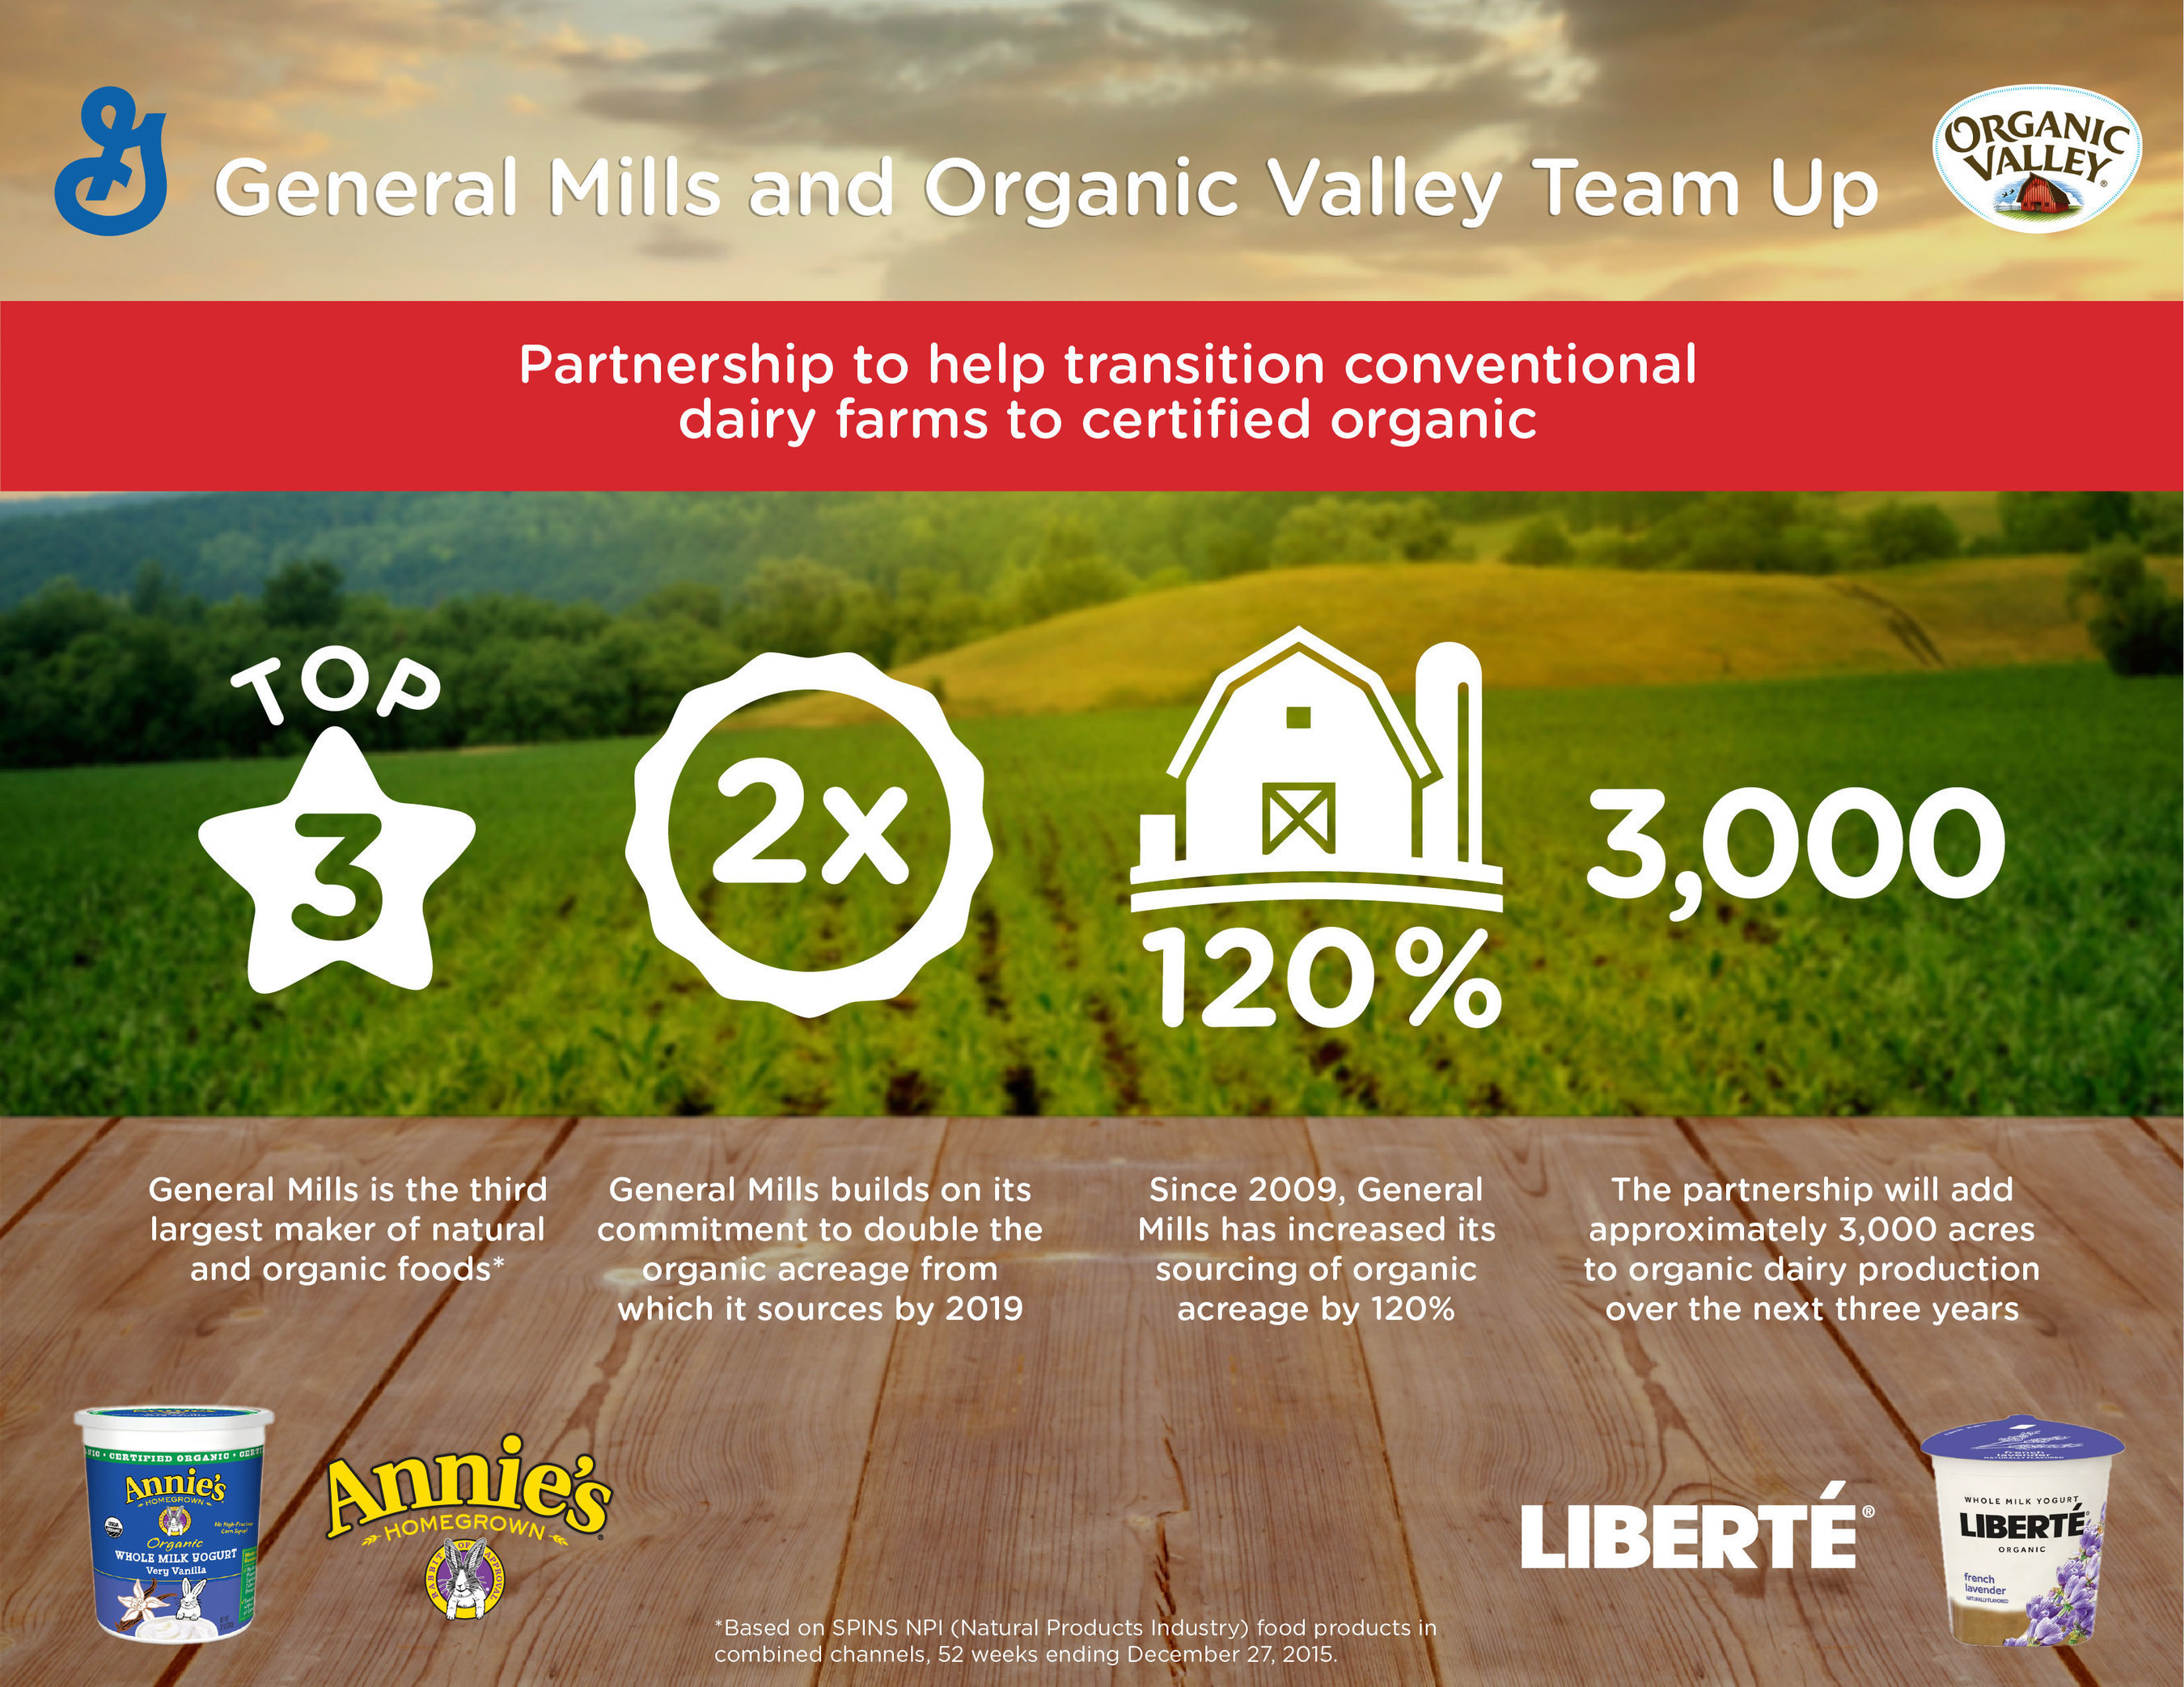 Infographic.  General Mills has announced a strategic sourcing partnership with the largest organic cooperative in the U.S. that will help about 20 dairy farms add around 3,000 acres to organic dairy production over the next three years.